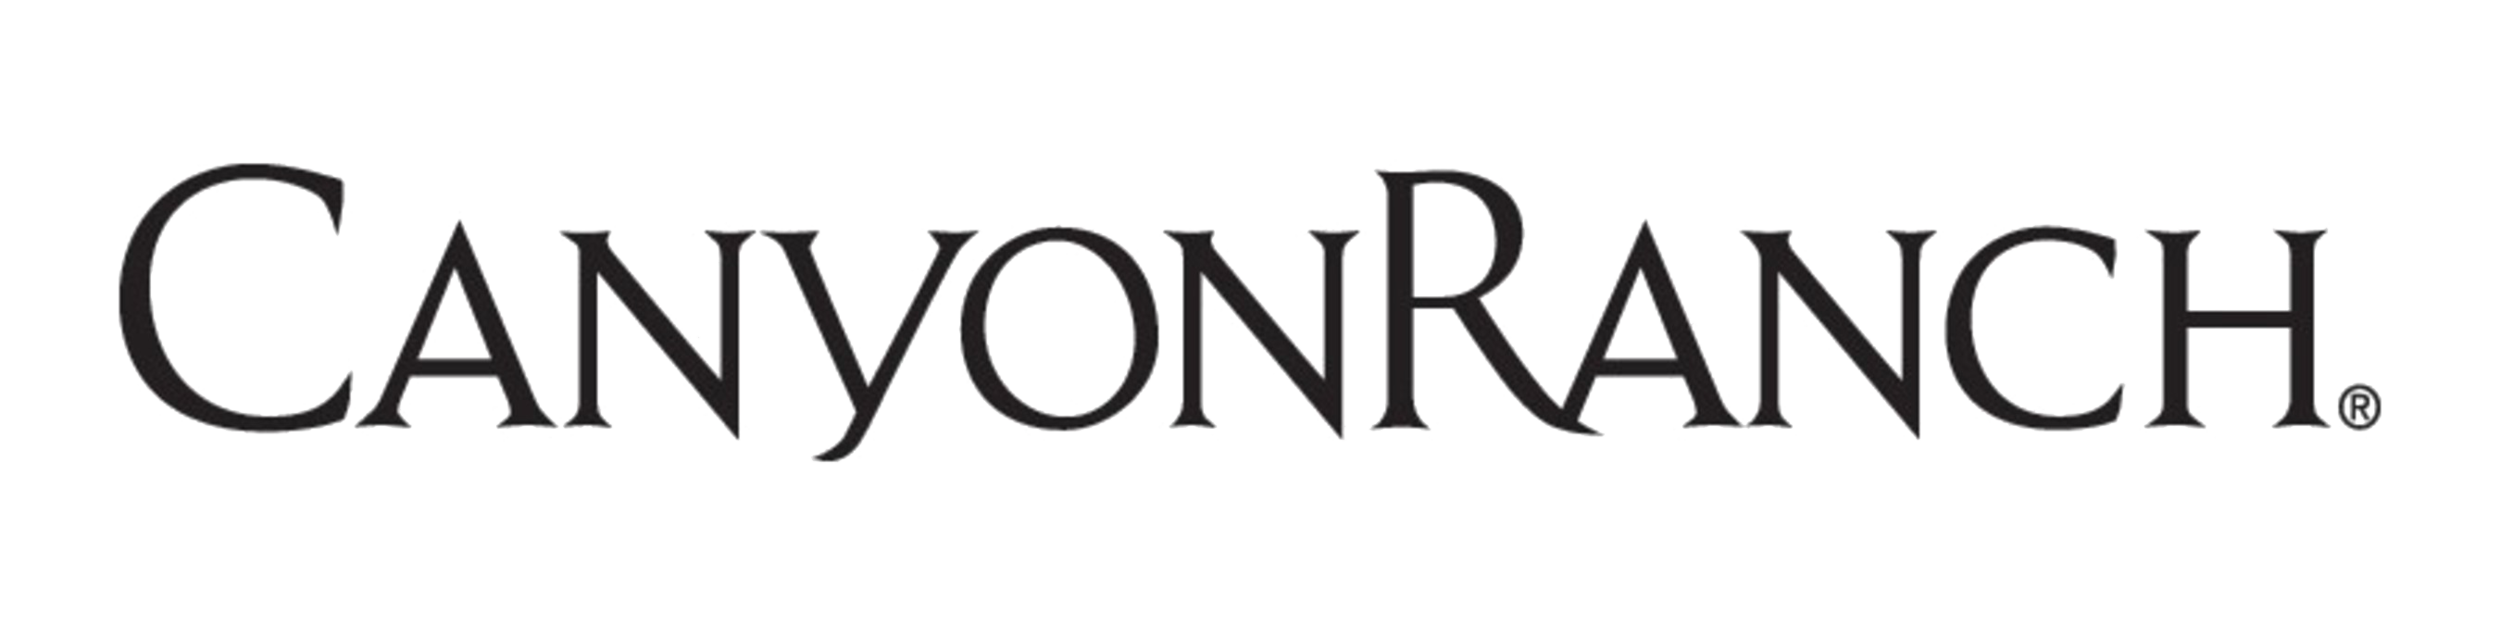 Canyon-Ranch-logo-for-website.png